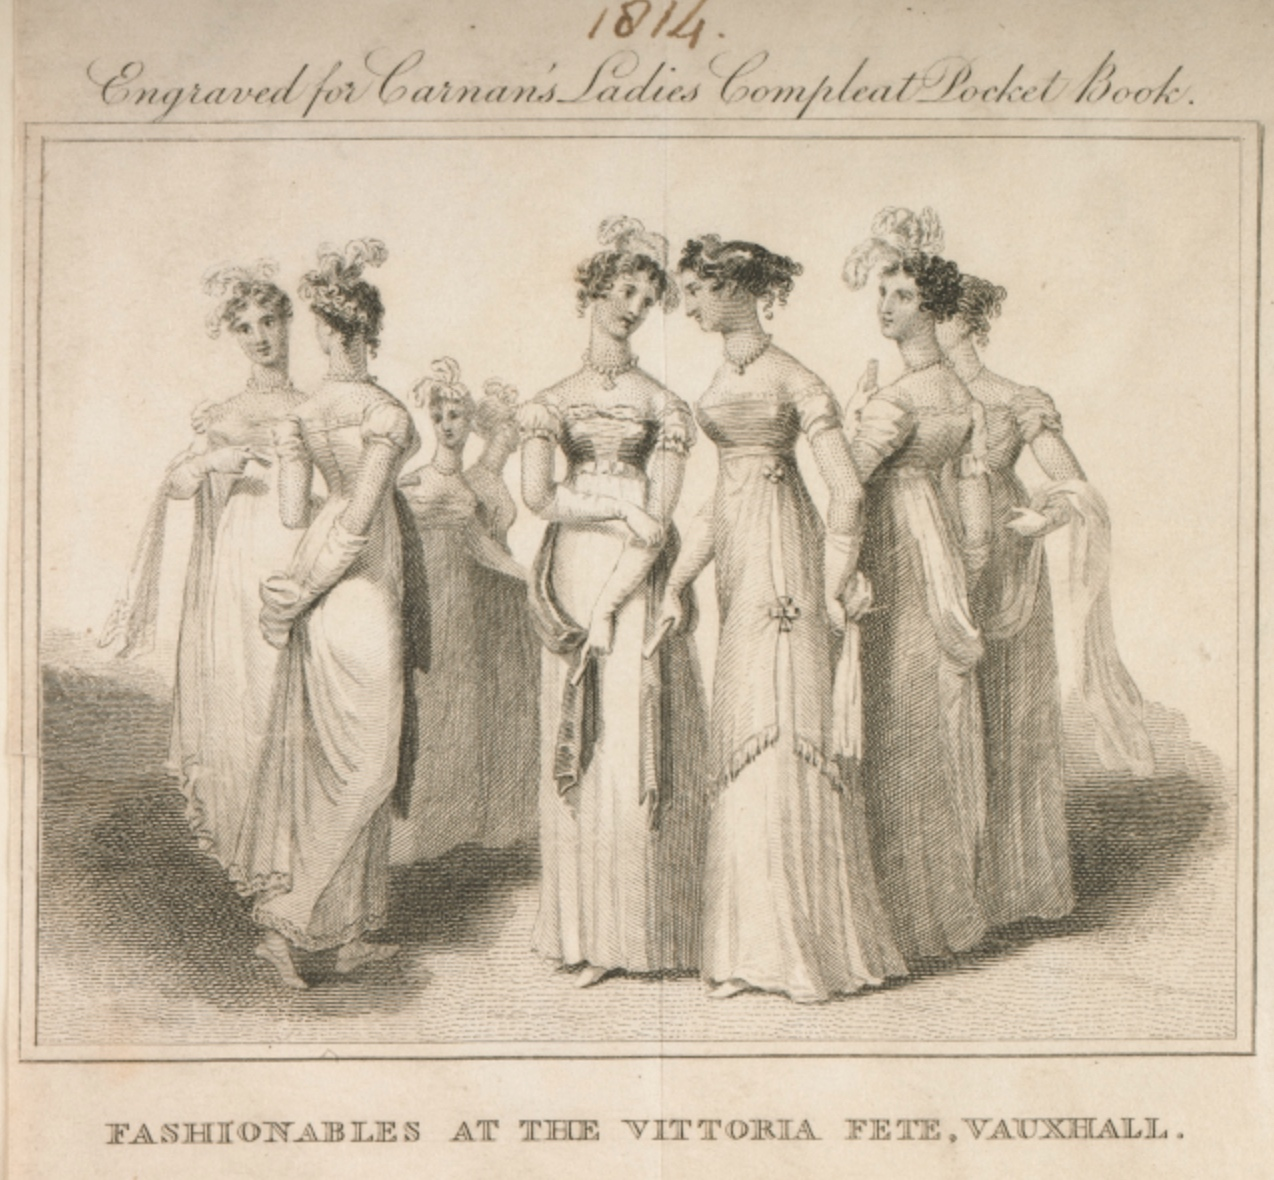 Fashionable Women at Vauxhall to celebrate a military victory, 1813/1814 (Museum         of London 2002.139/2294). Click to enlarge.